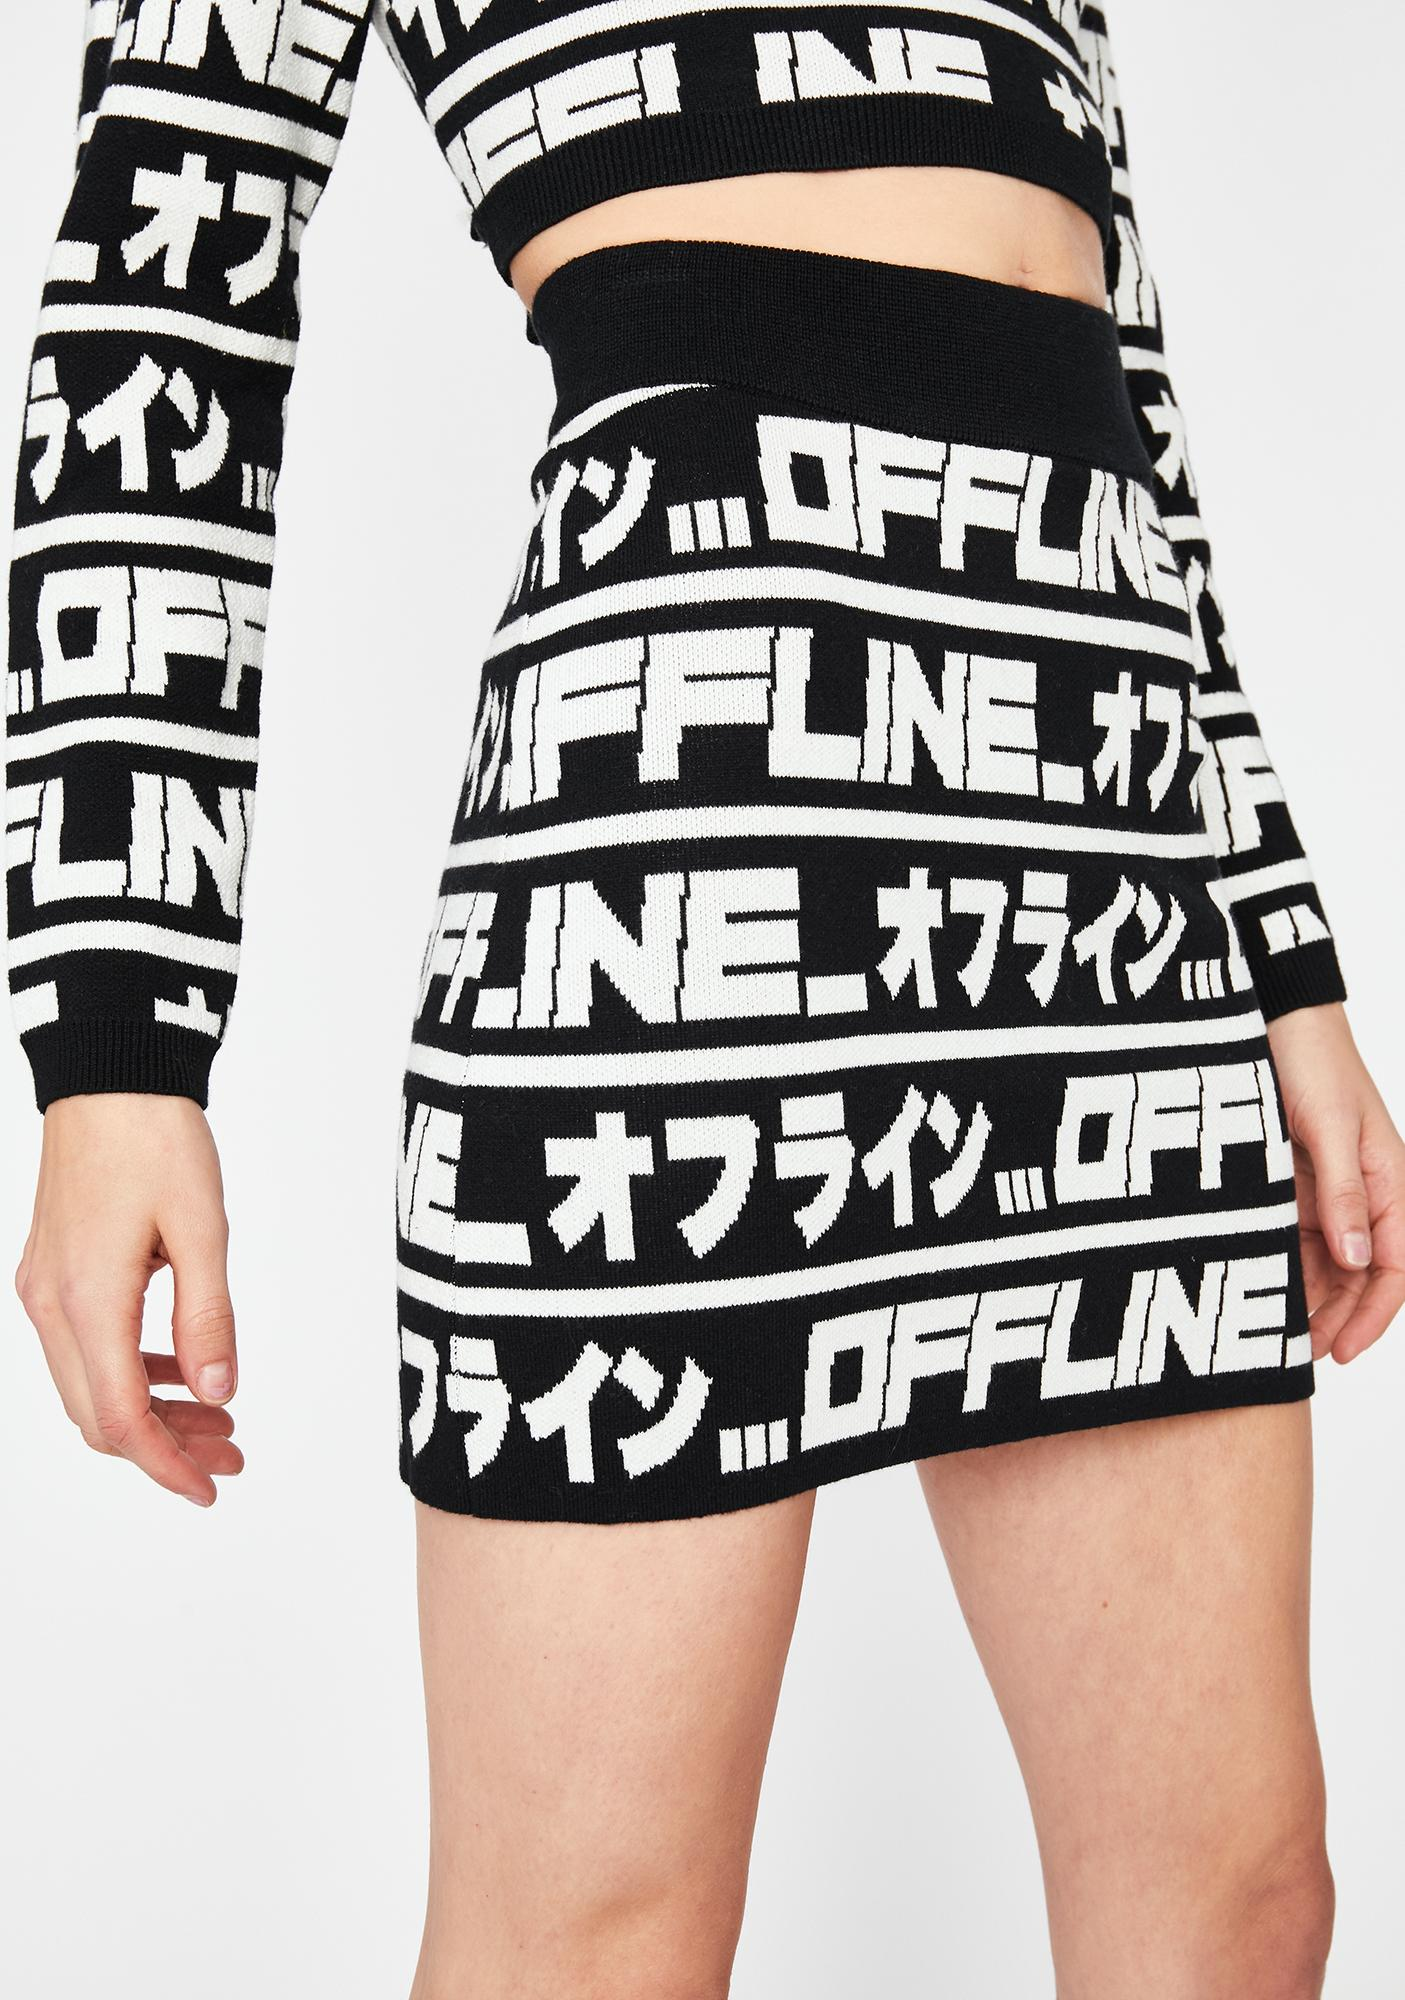 Current Mood Logged Out Sweater Skirt